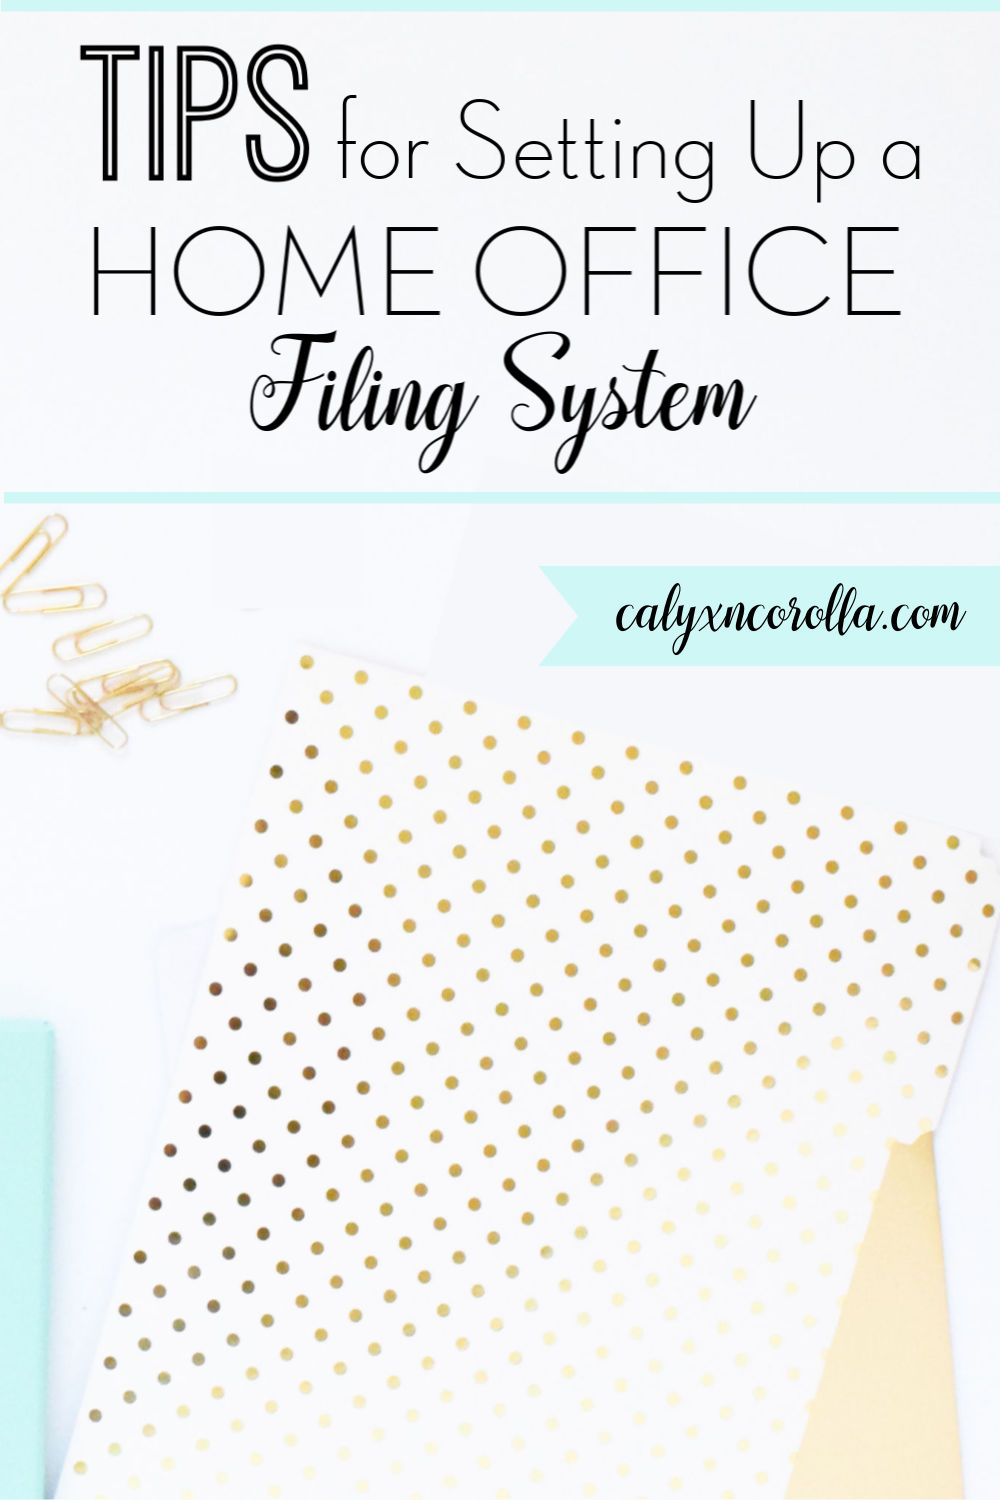 Tips for Setting Up a Home Office Filing System